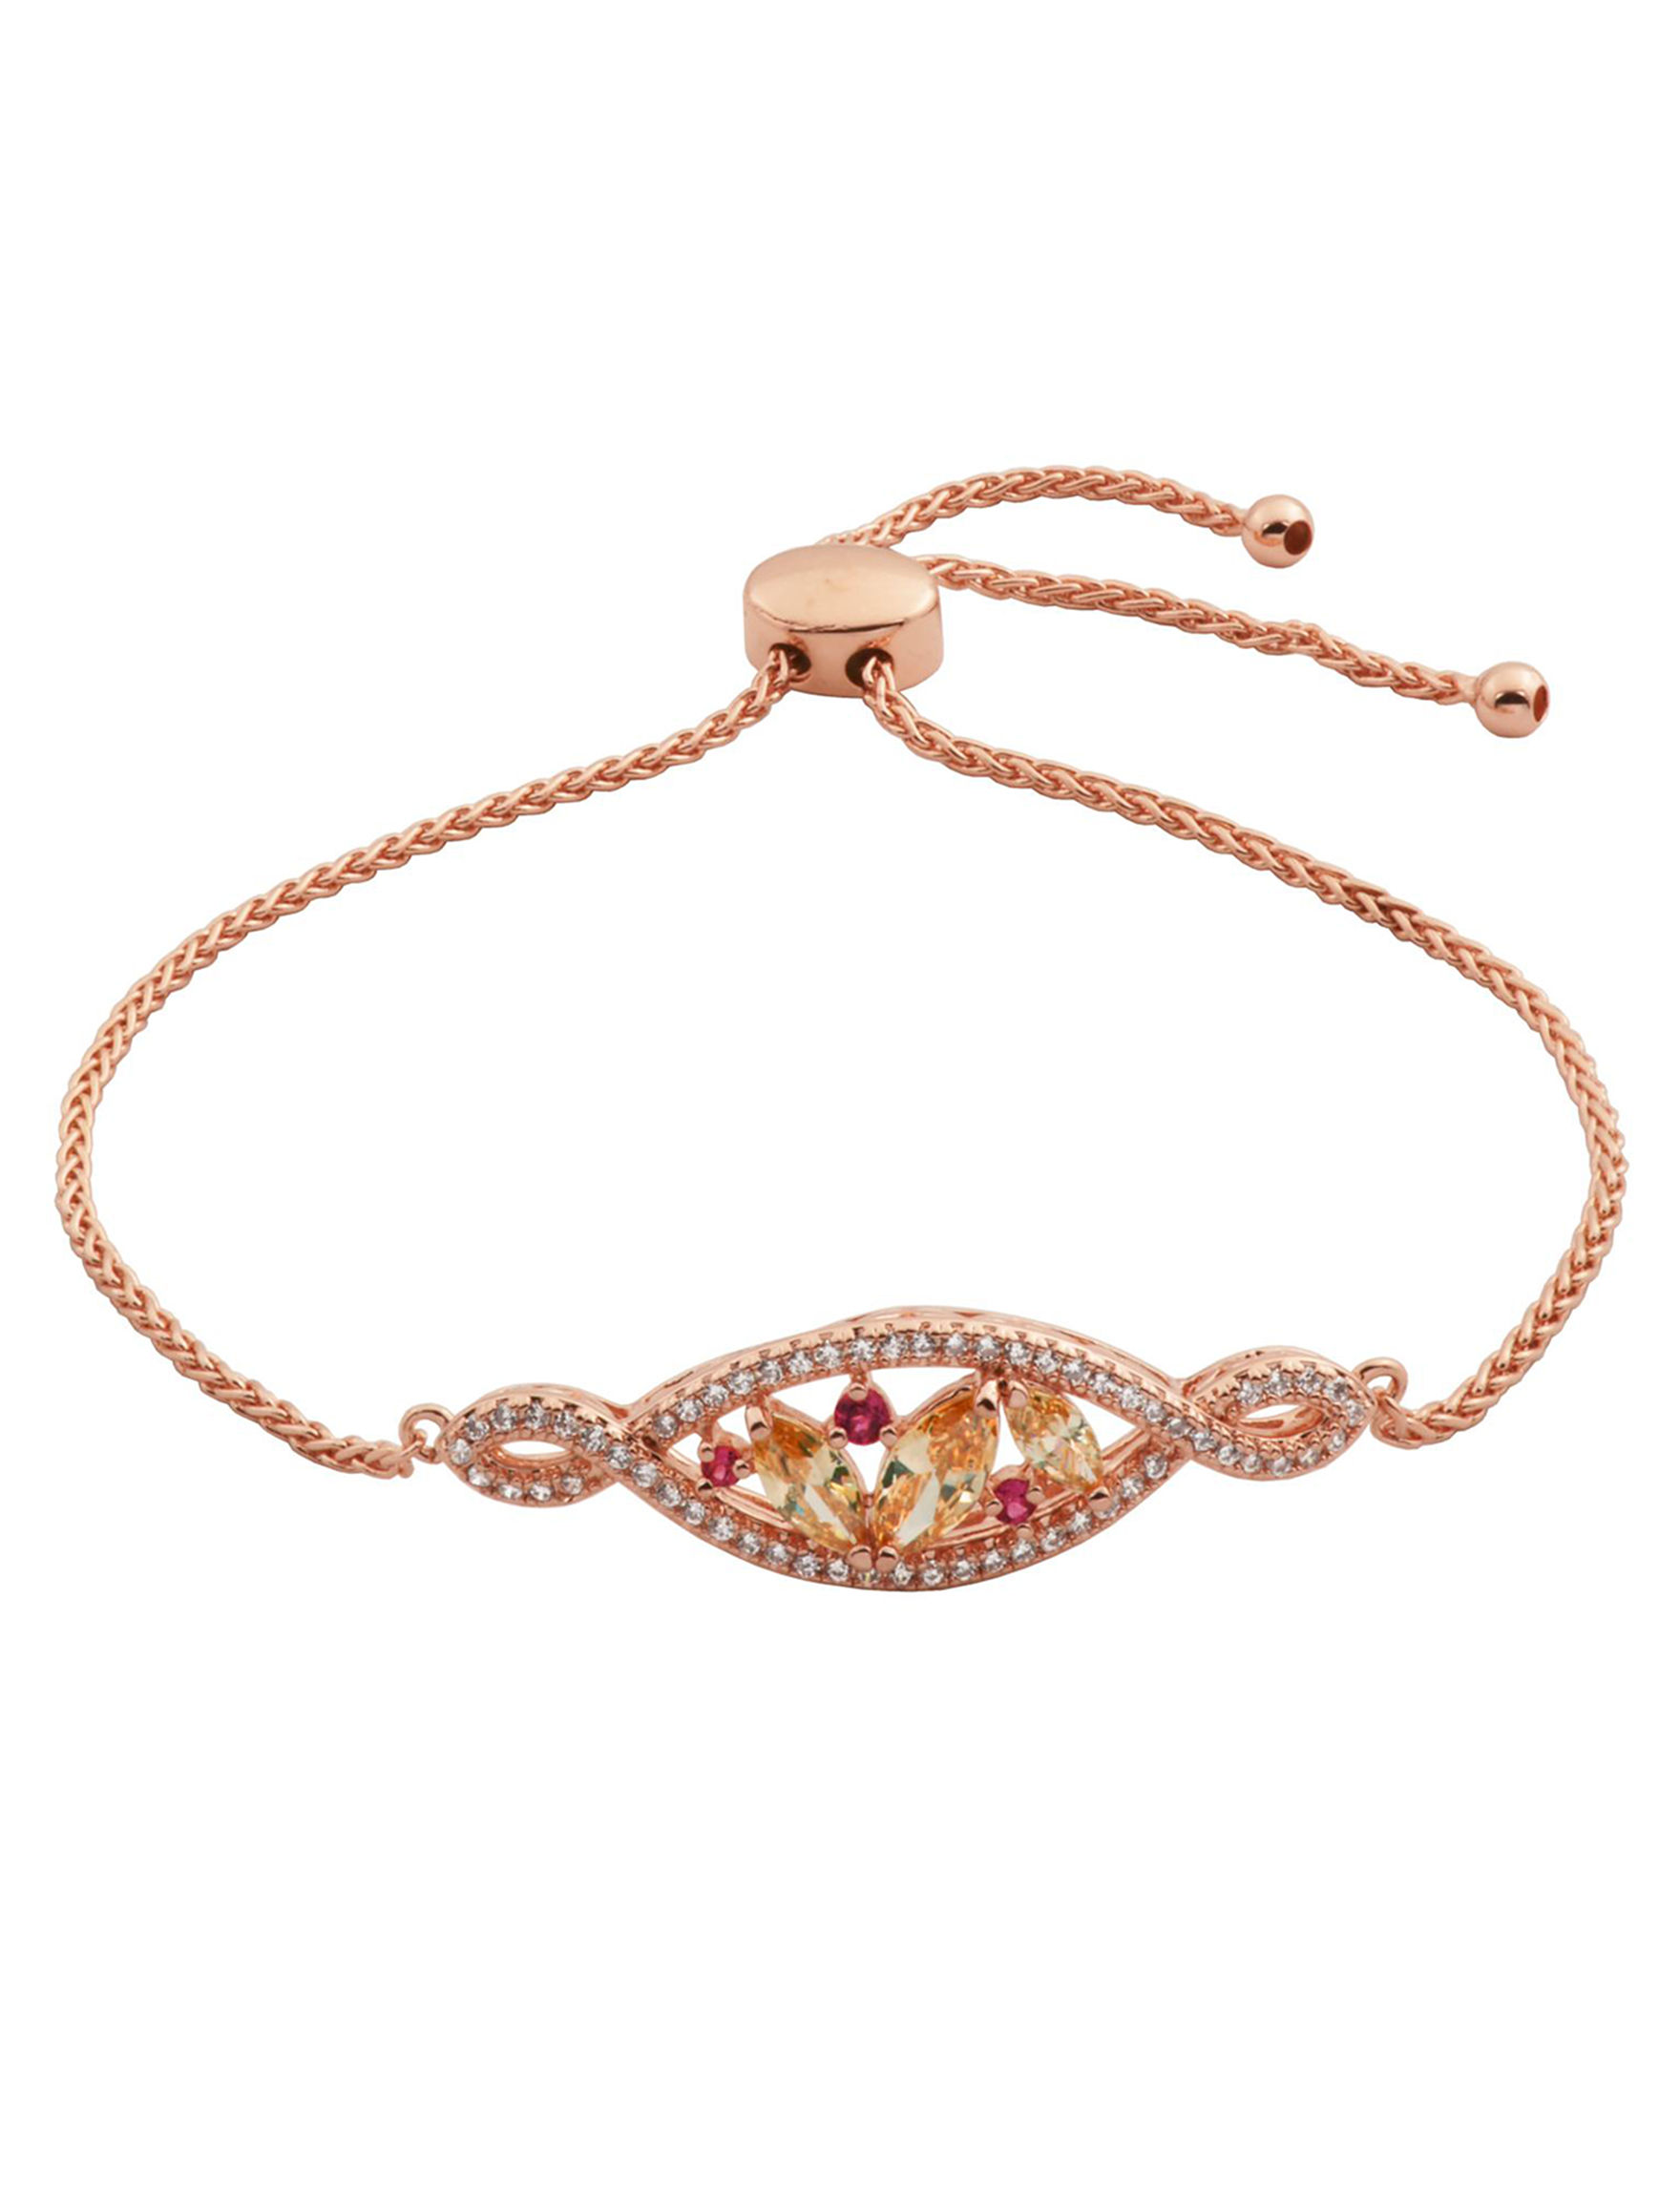 PAJ INC. Rose Gold Bracelets Fine Jewelry